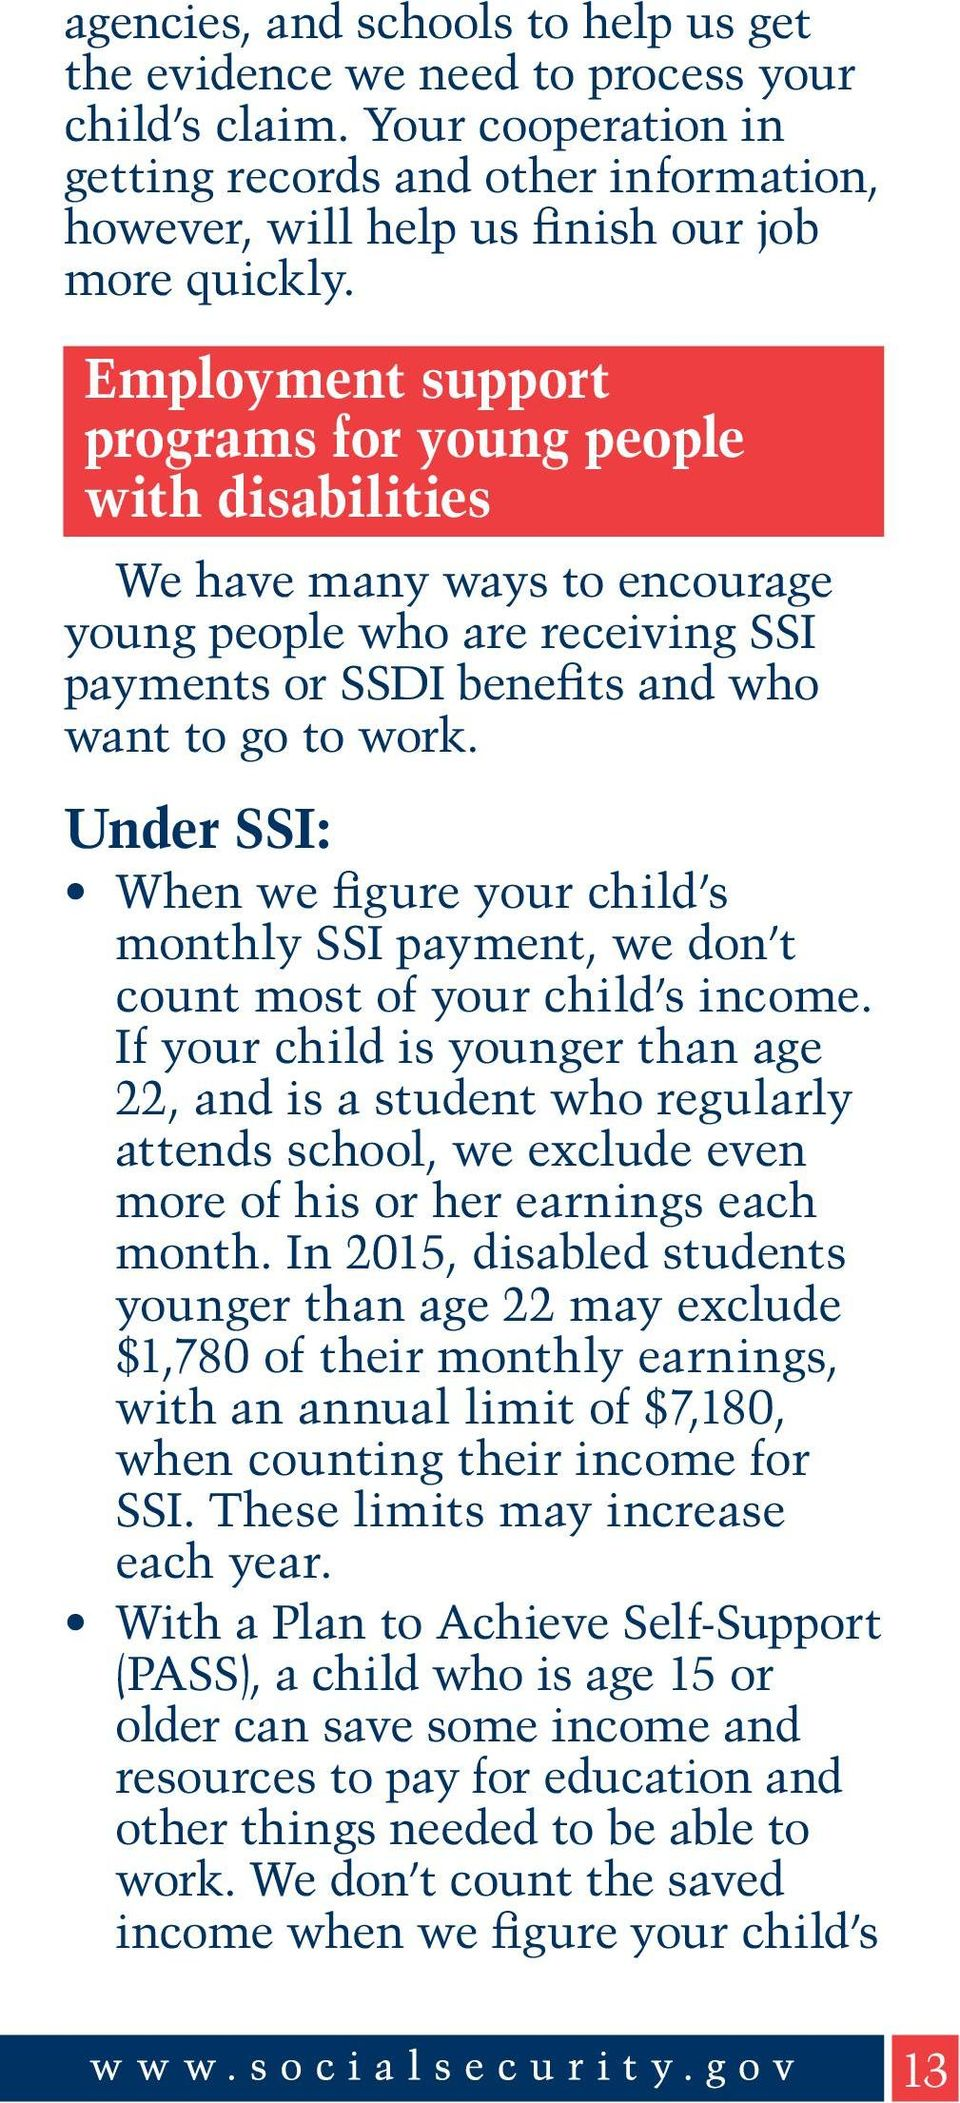 Under SSI: When we figure your child s monthly SSI payment, we don t count most of your child s income.